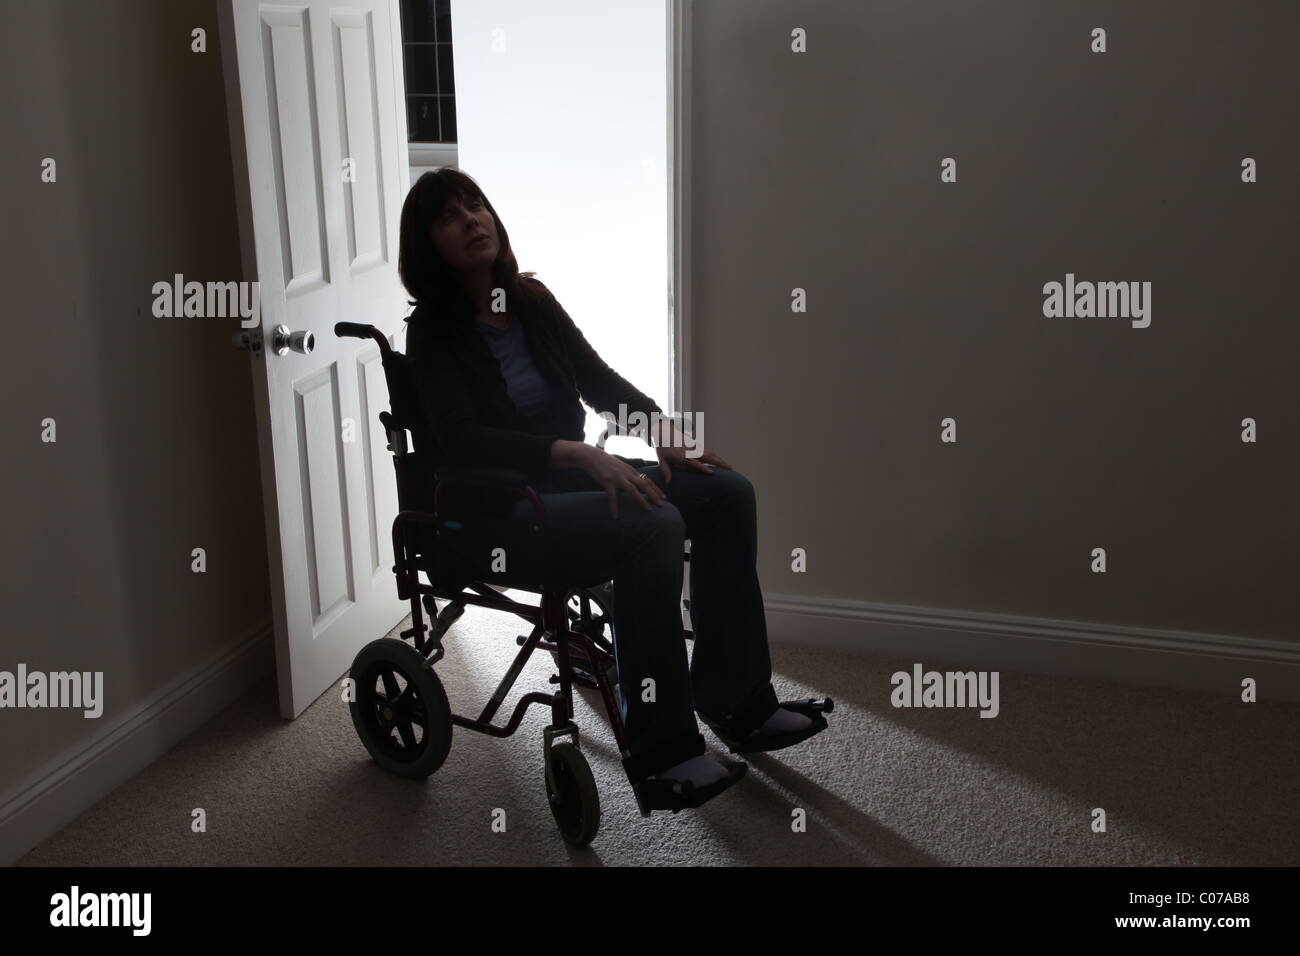 Woman in a wheelchair alone by an open door - Stock Image